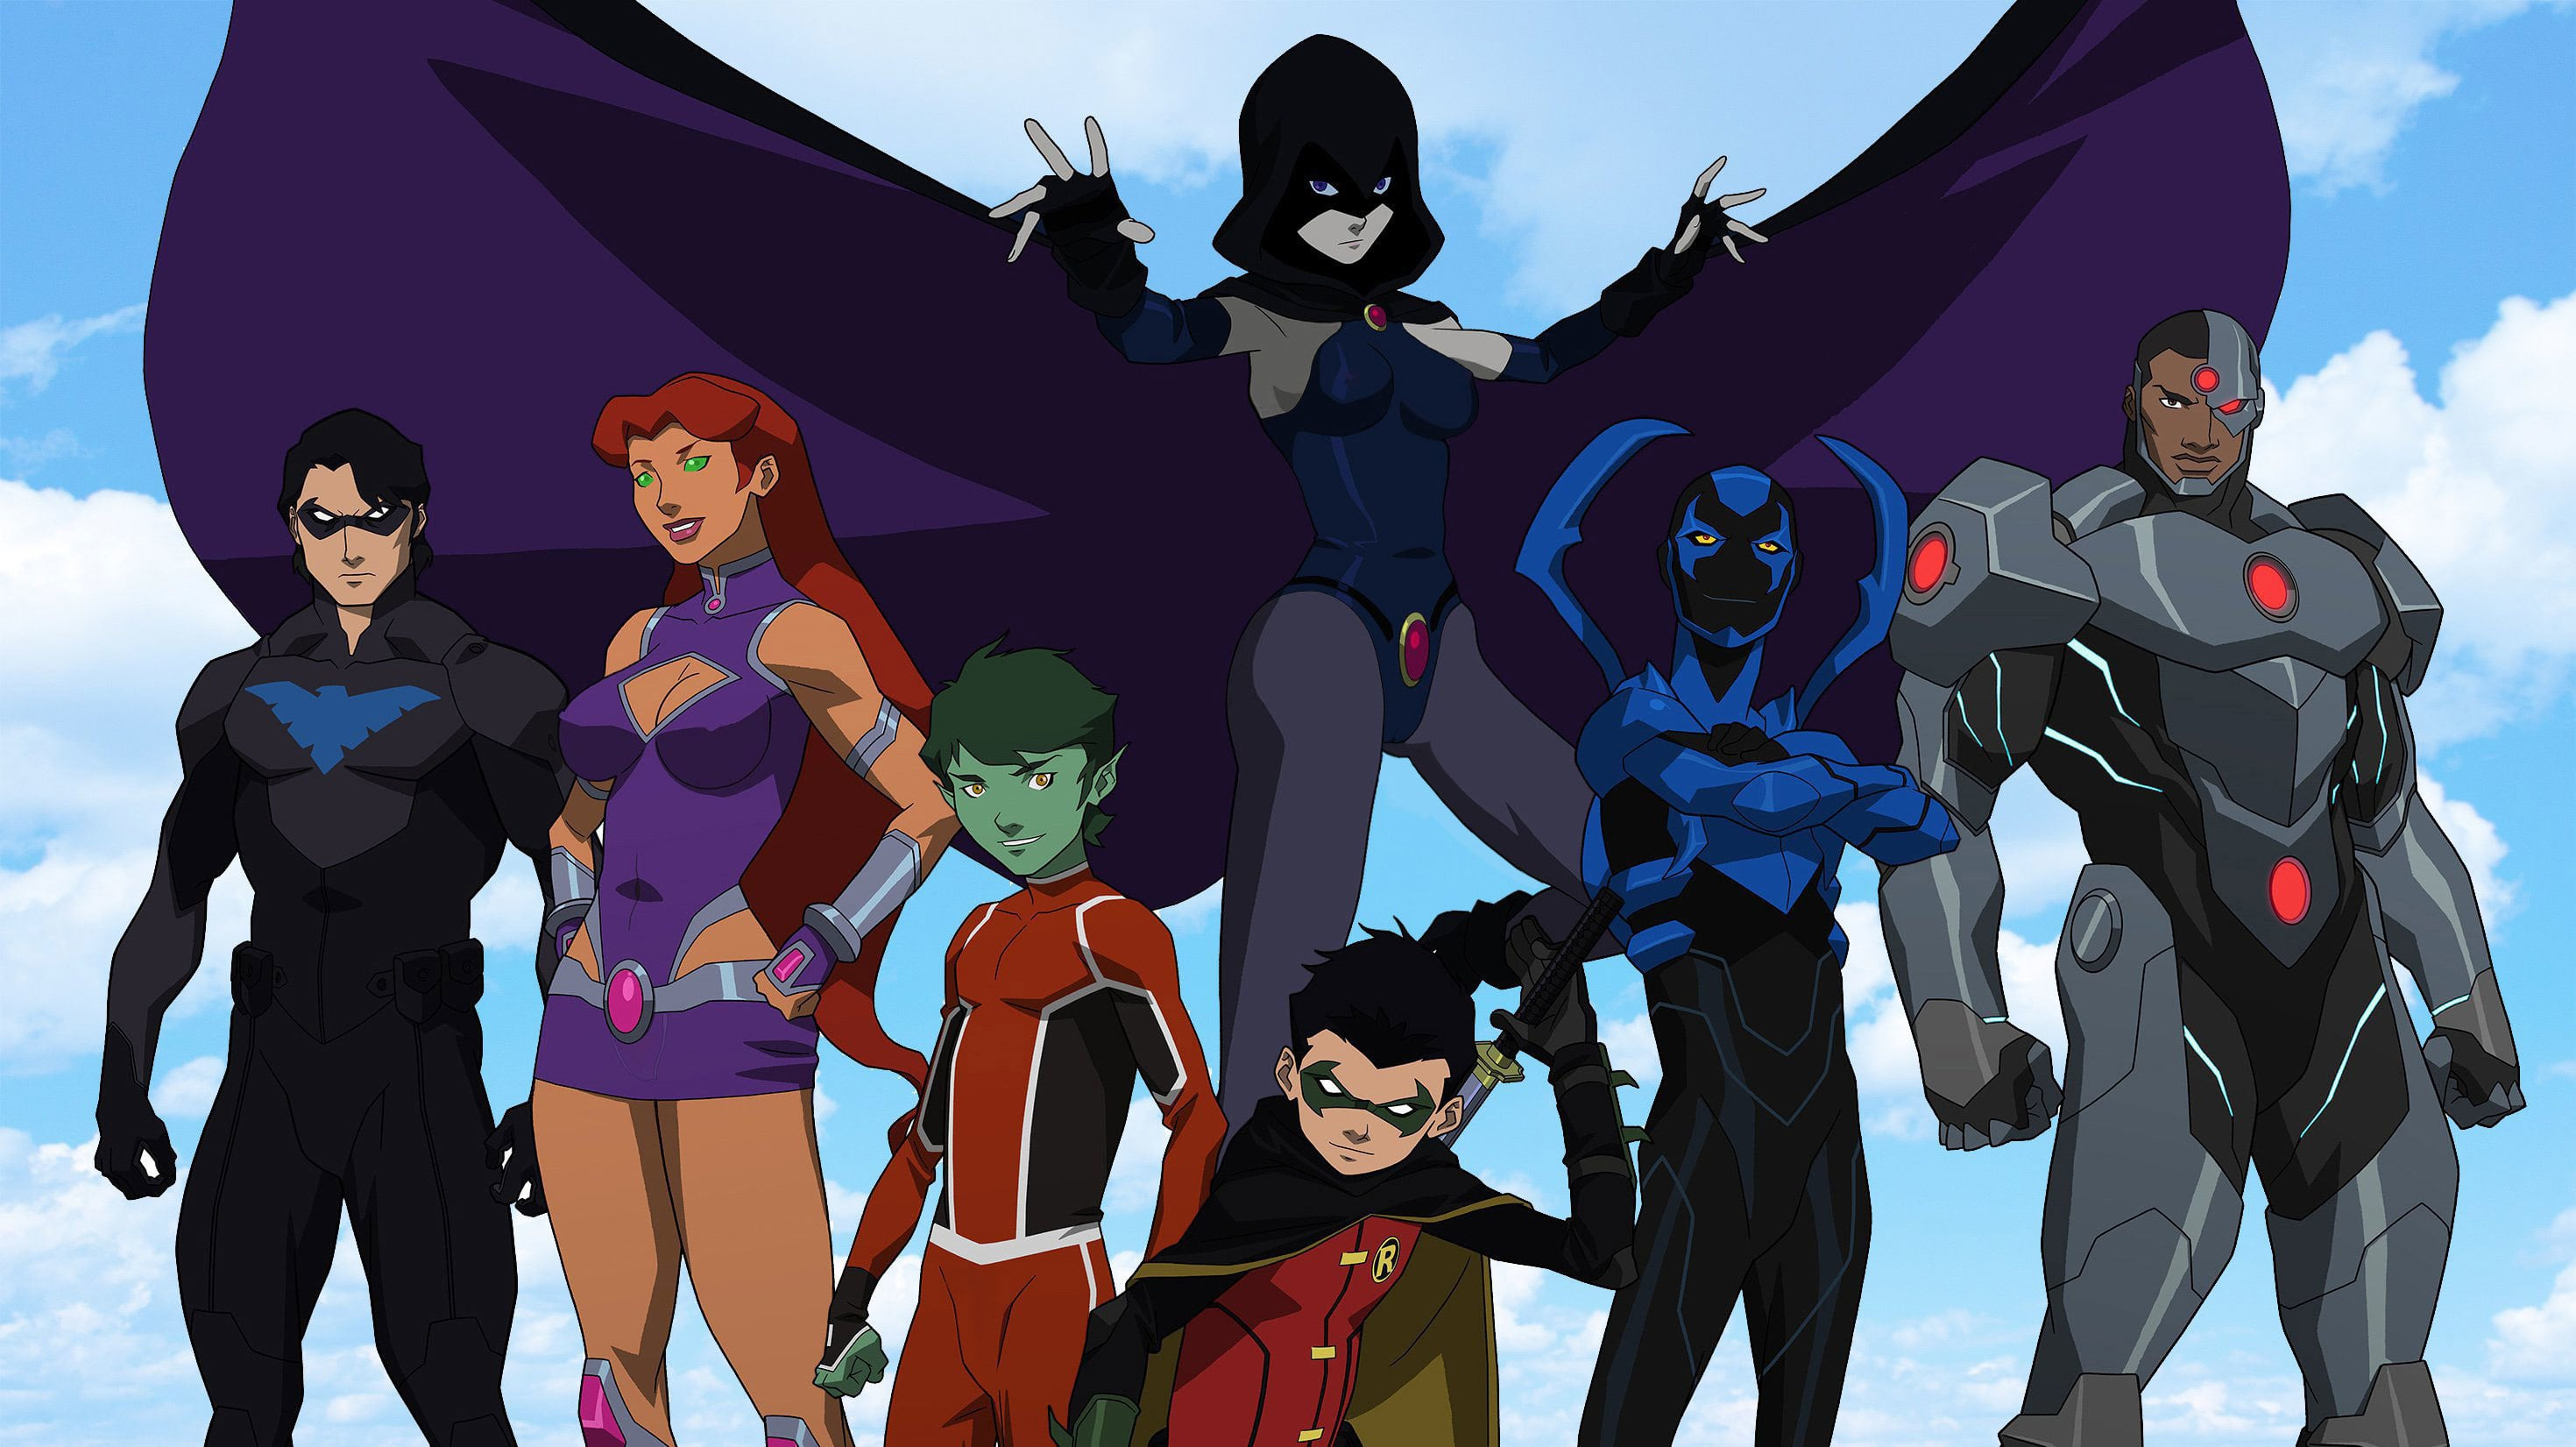 Nightwing, Starfire, Beast Boy, Raven, Damian Wayne/Robin, Blue Beetle and Cyborg in Teen Titans The Judas Contract (2017)